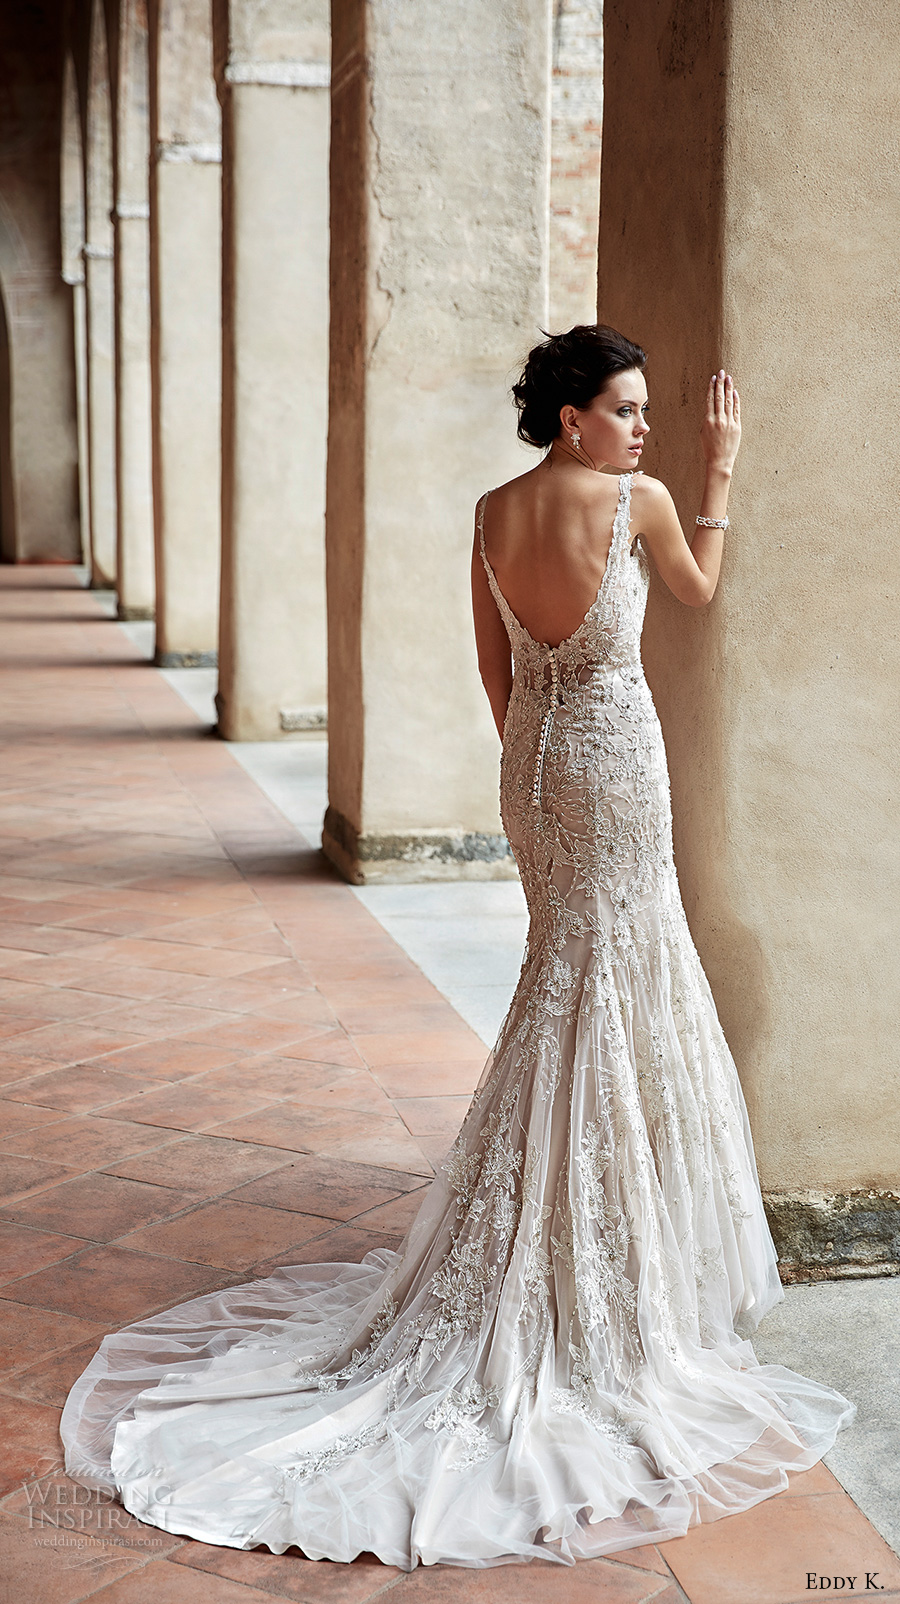 Low Back Wedding Dress Fit And Flare : Wedding eddy k couture dresses rumor bus